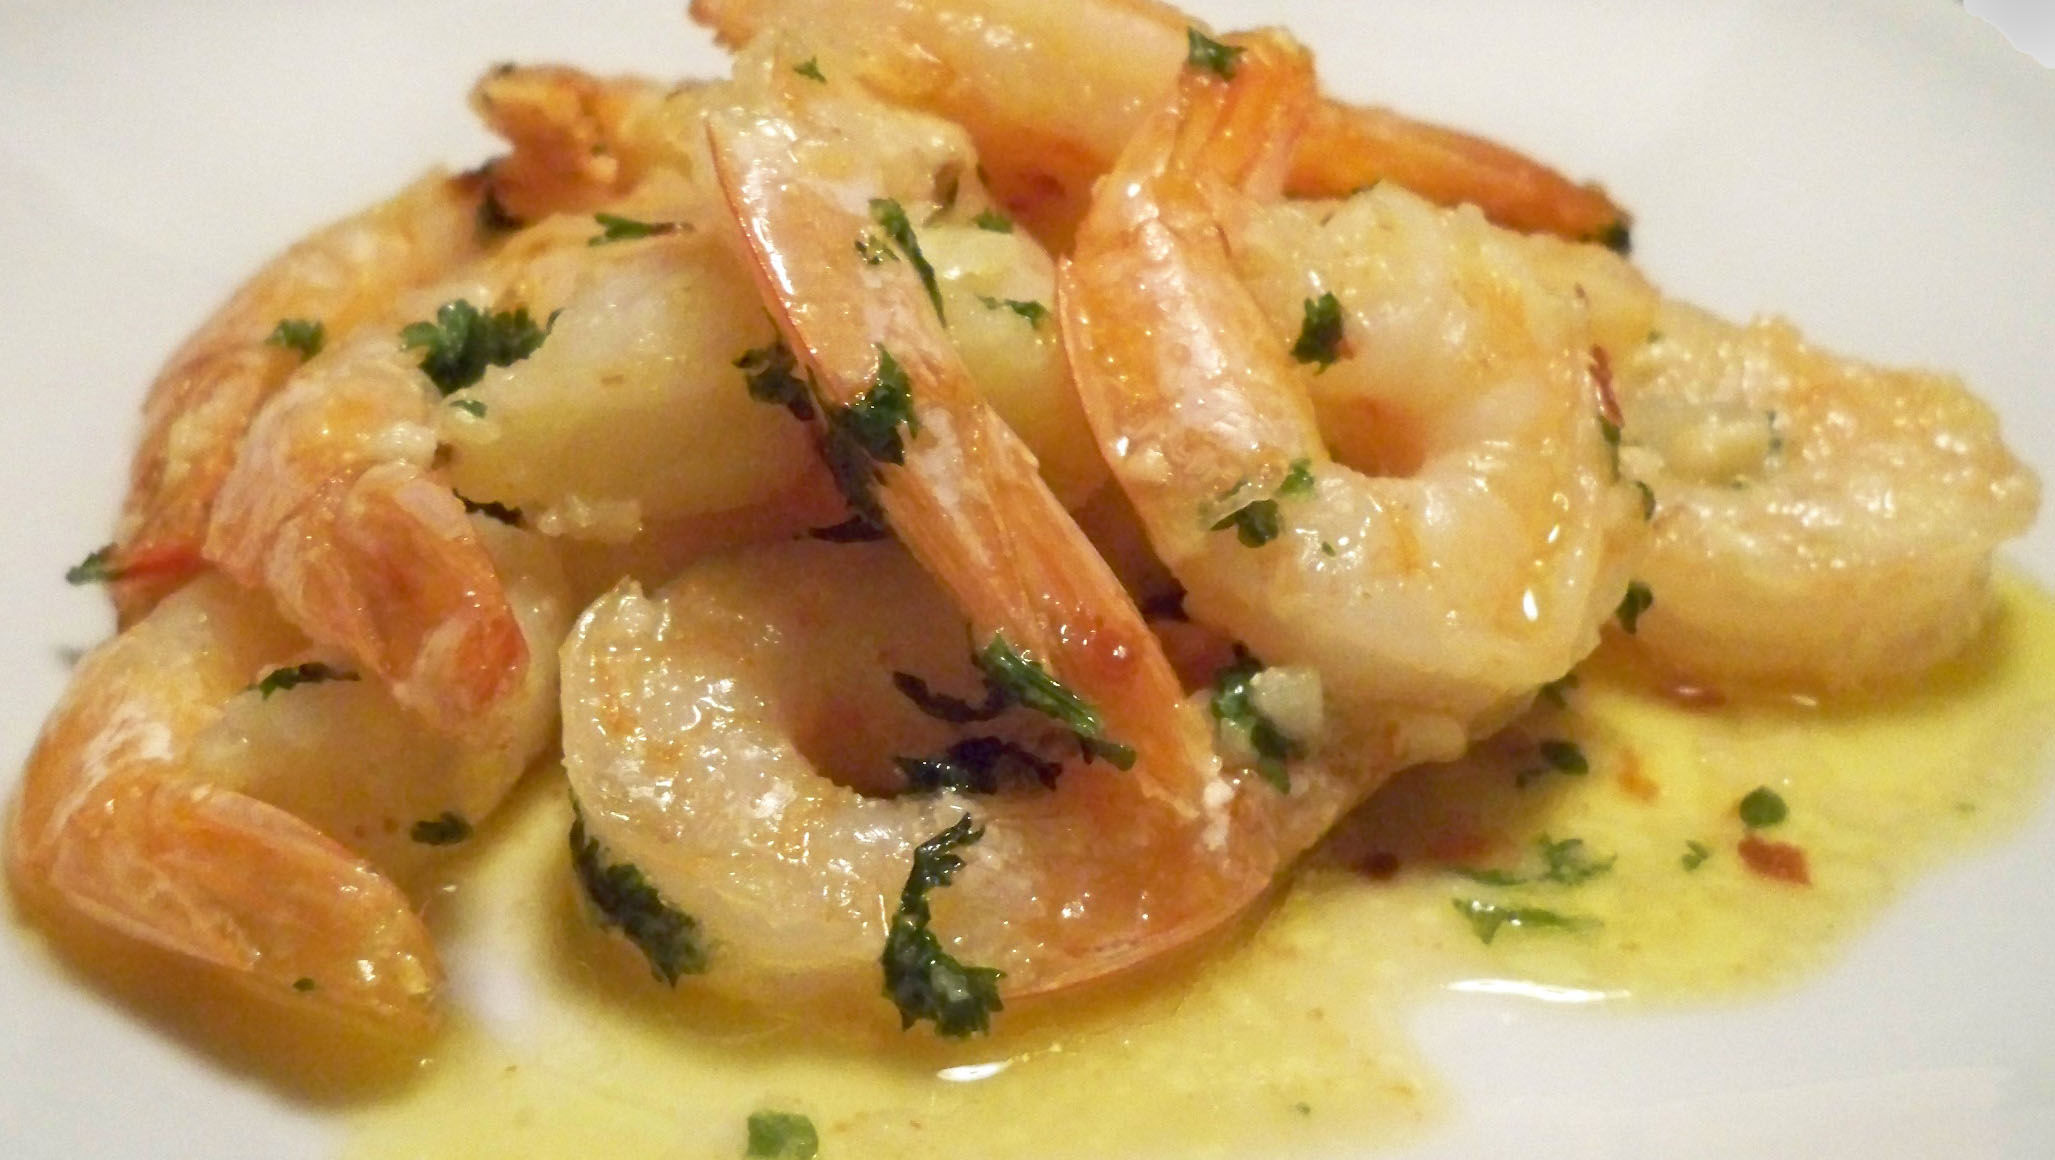 Posts related to Folly Beach Garlic Shrimp